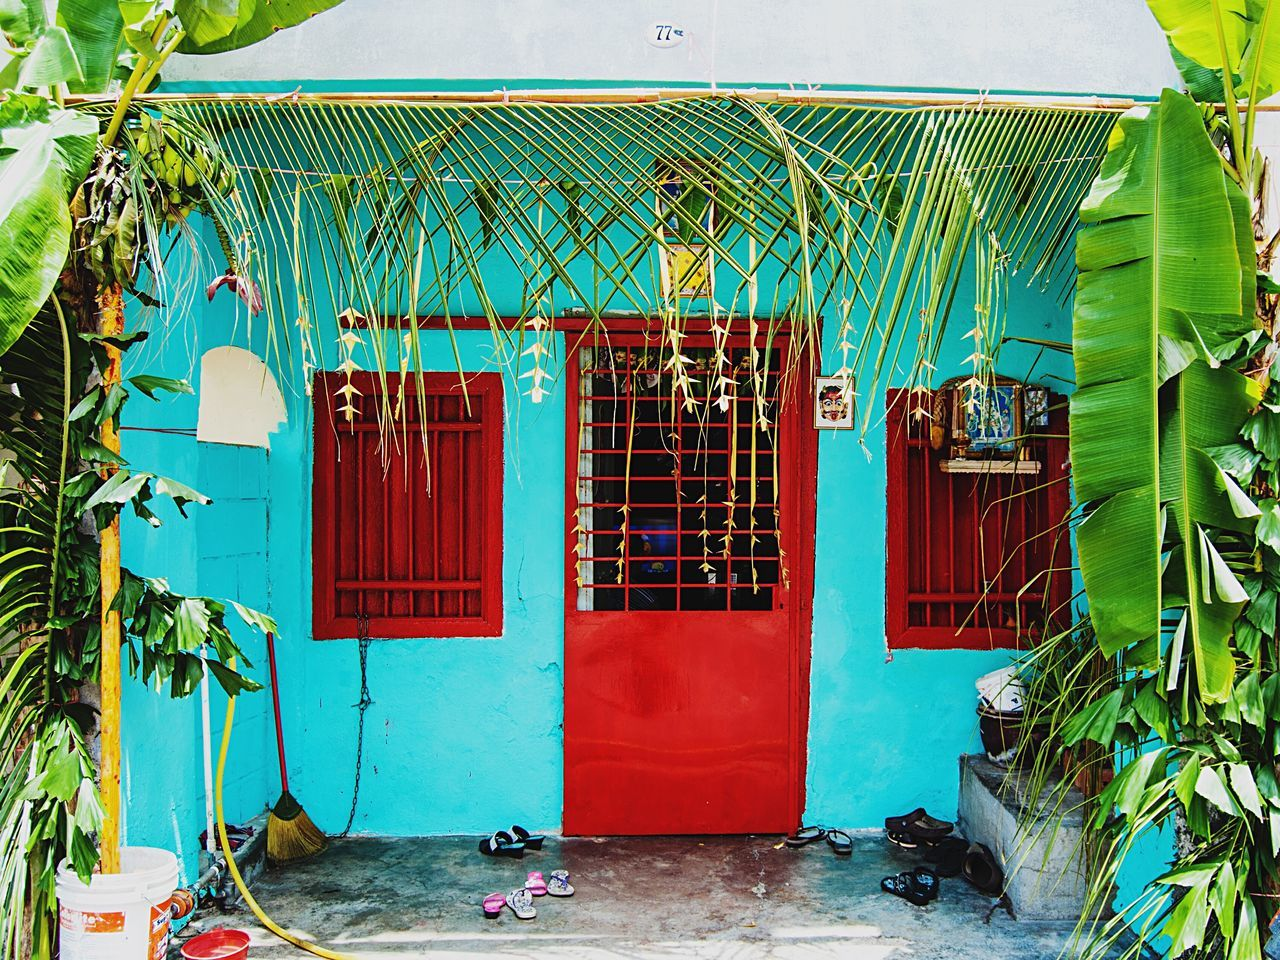 Building Exterior Architecture Authentic Culture Georgetown Penang Malaysia Southeastasia World Heritage Site Colorful Bright Red Blue Green Fasade Home Door Windows Asian  Travel House